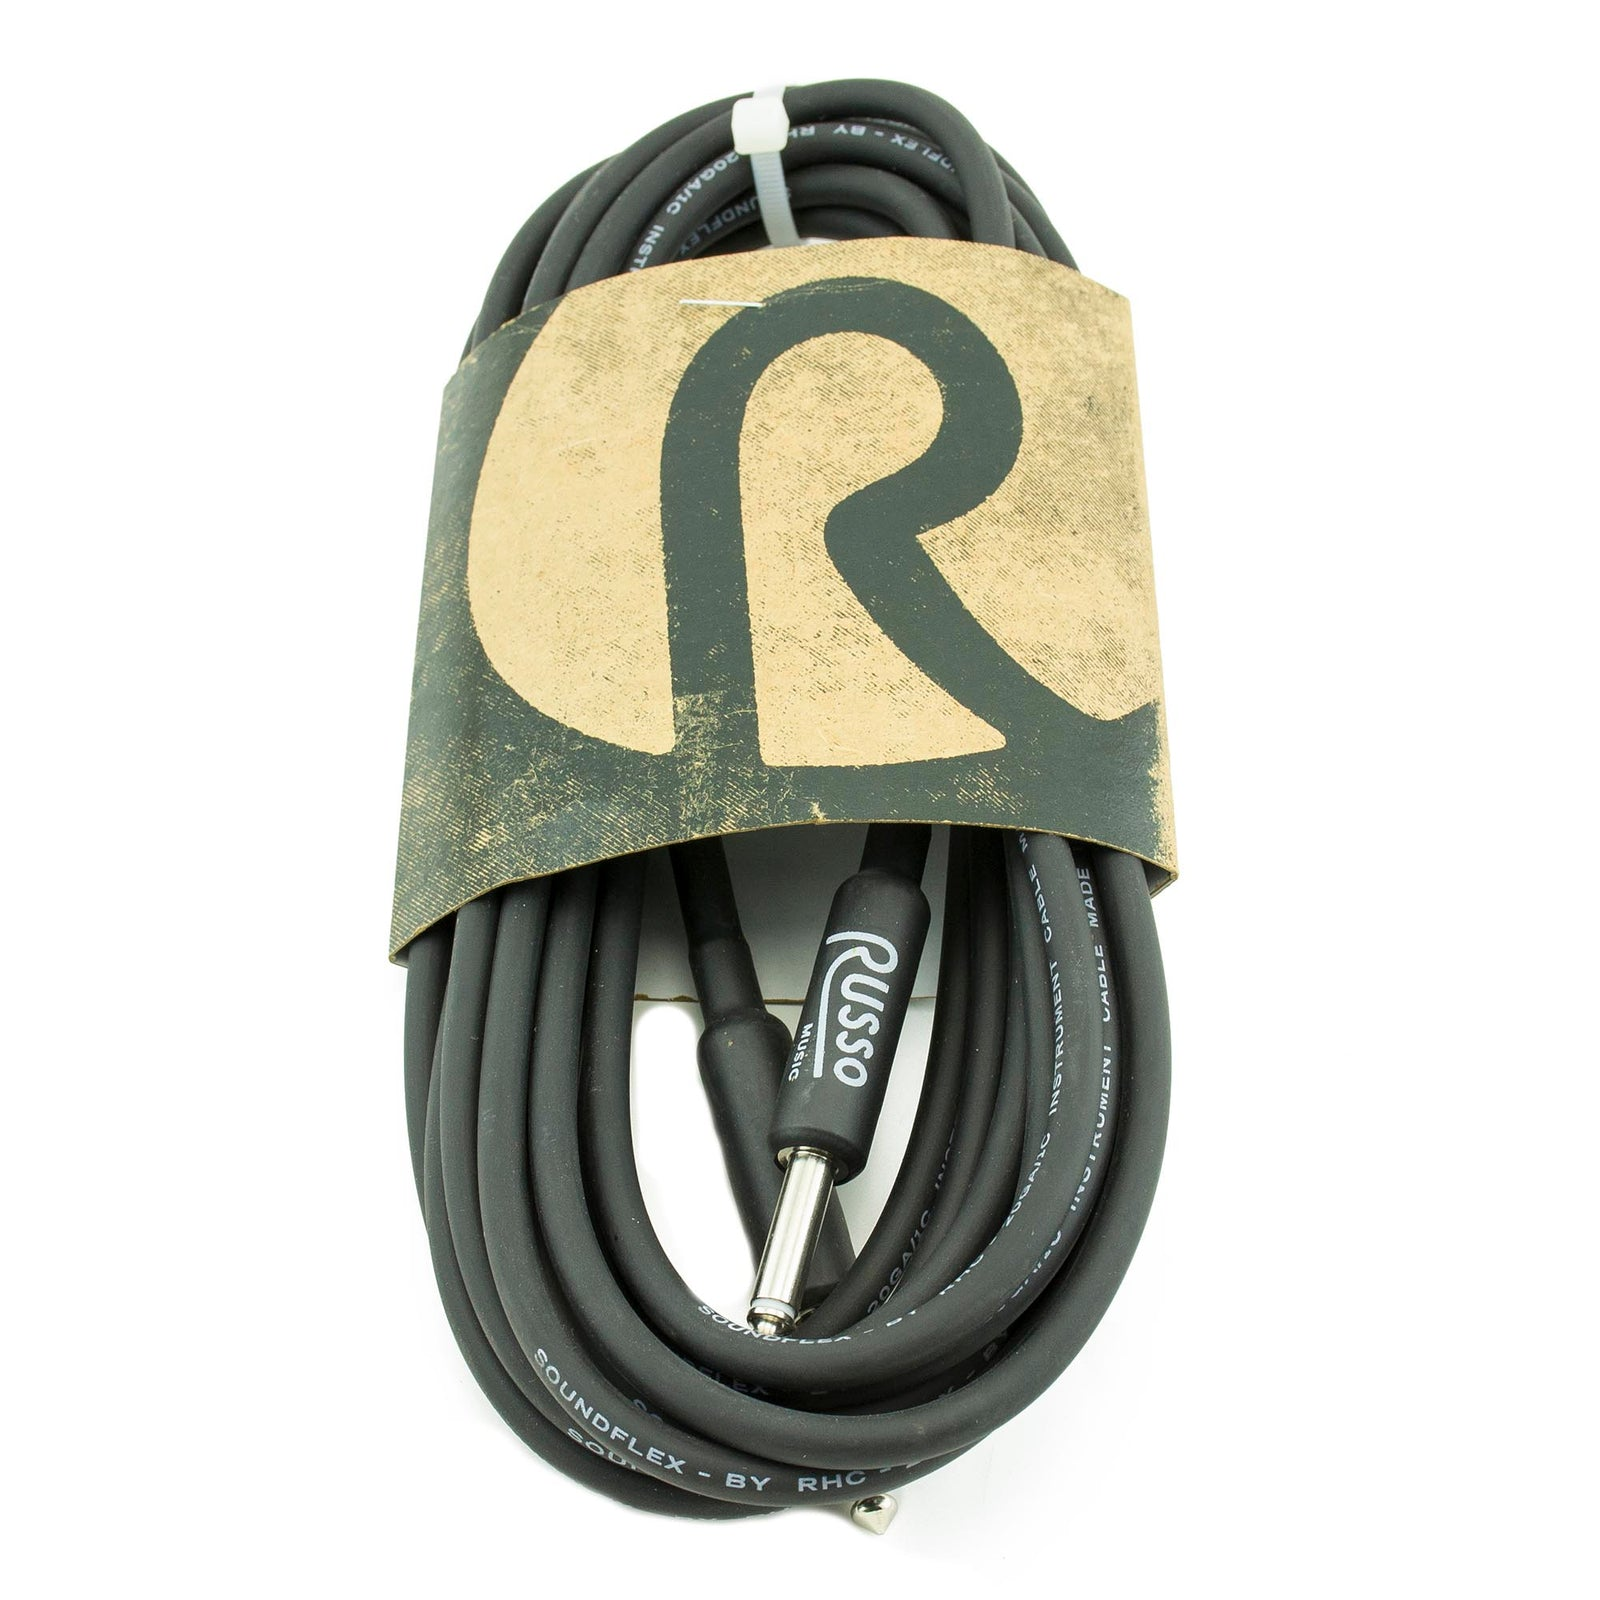 "Russo Music 1/4 To 1/4"" Unbalanced Cable - 20' S"